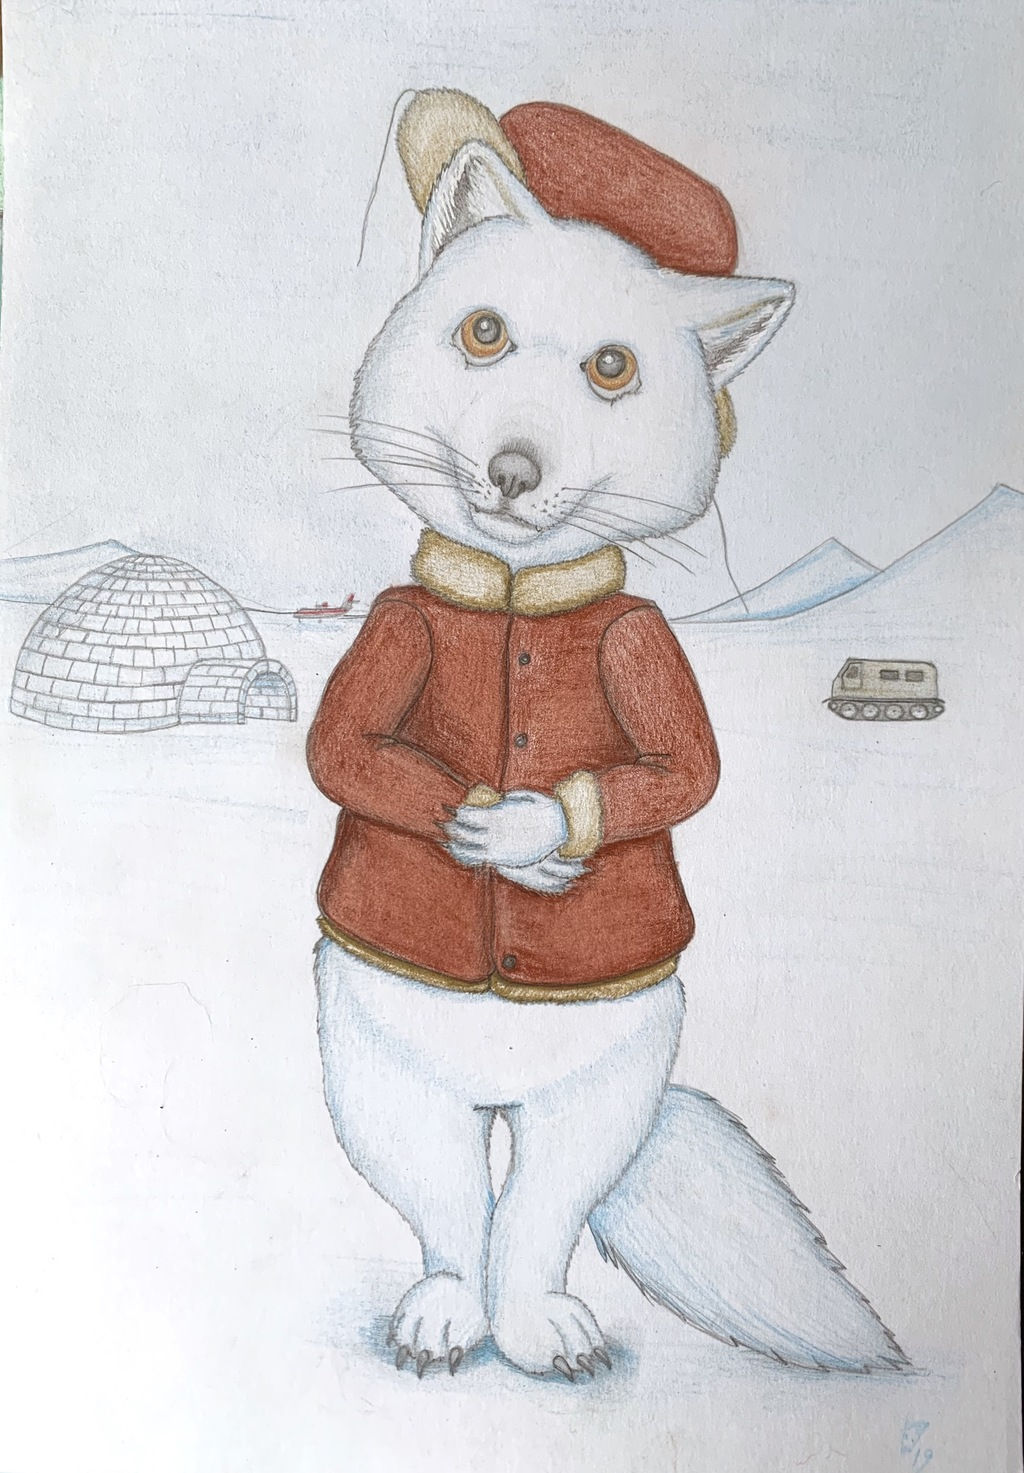 Most recent image: Arctic fox